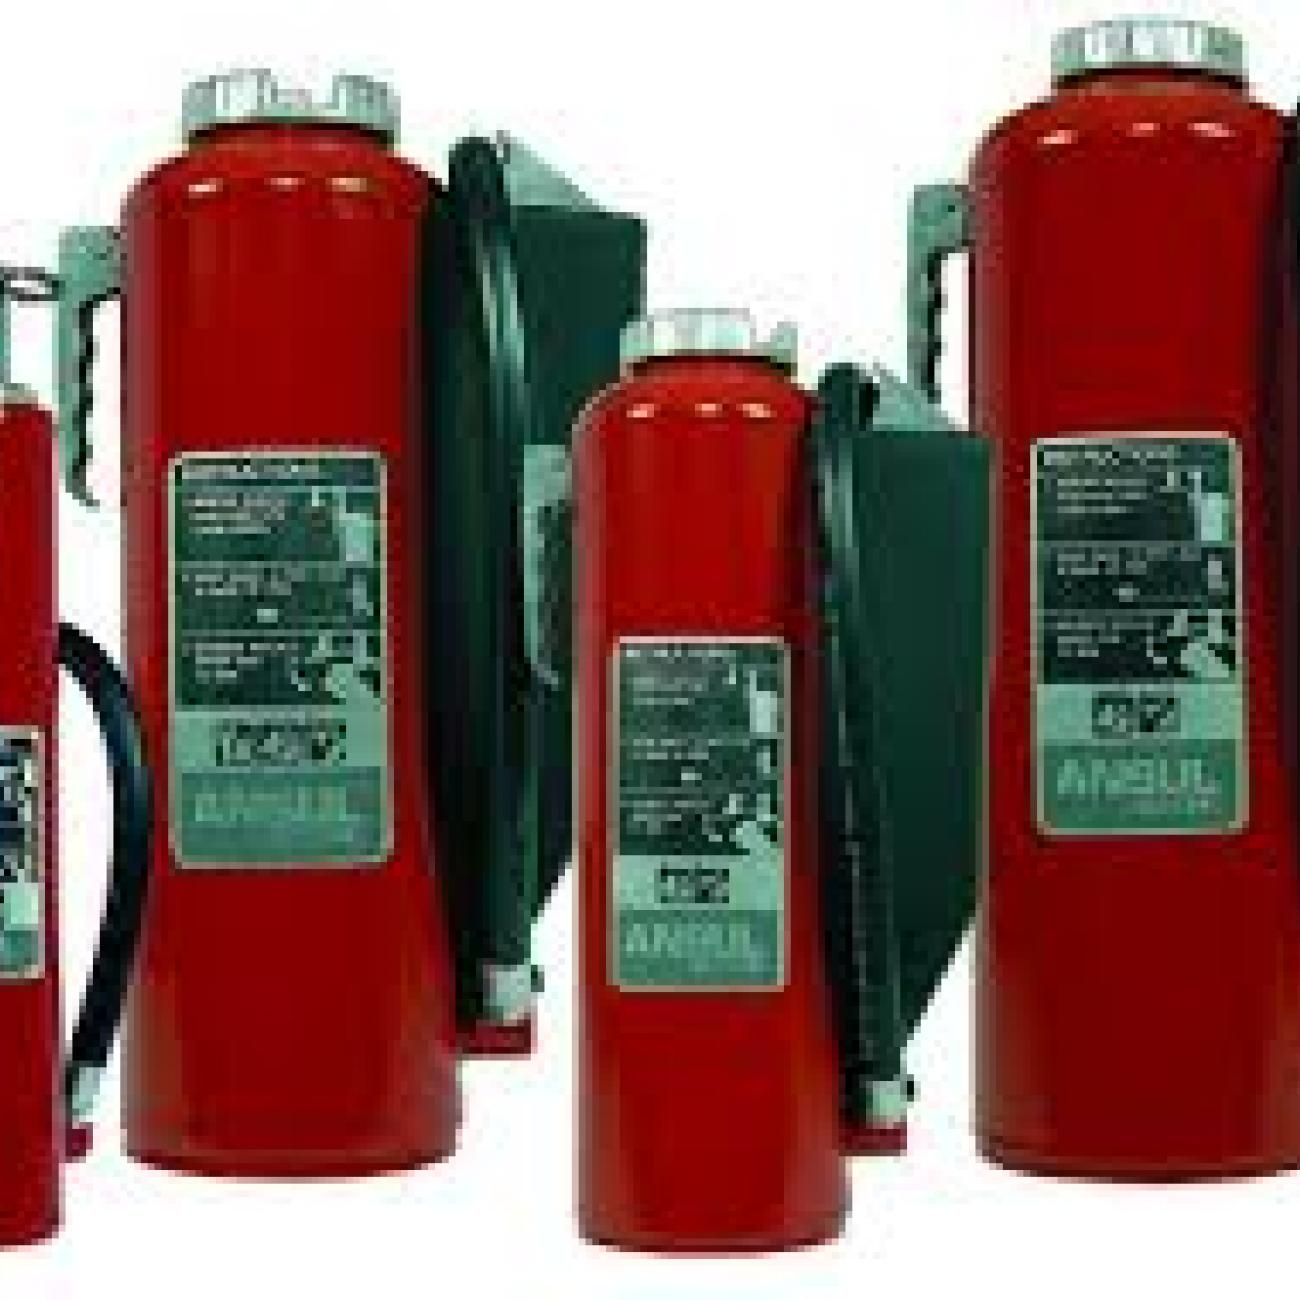 Cartridge Operated Dry Chemical Extinguisher